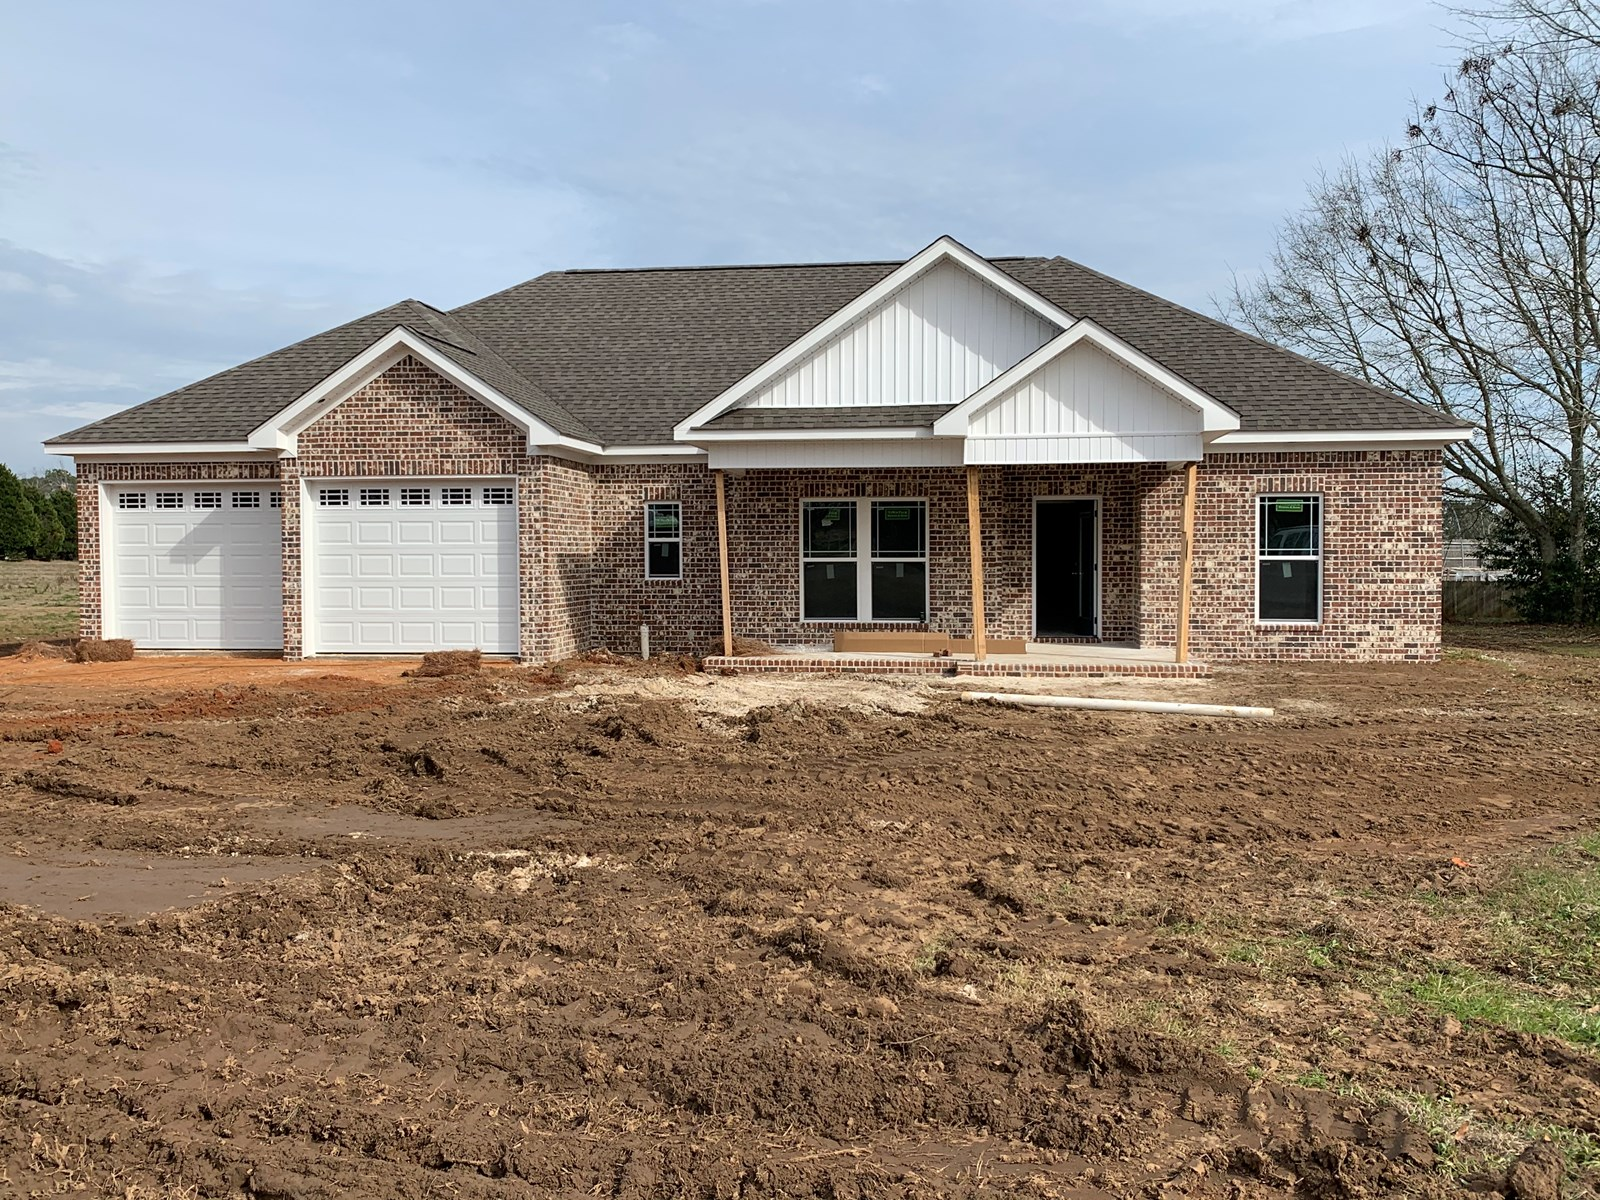 New Construction For Sale in Henry County, Al